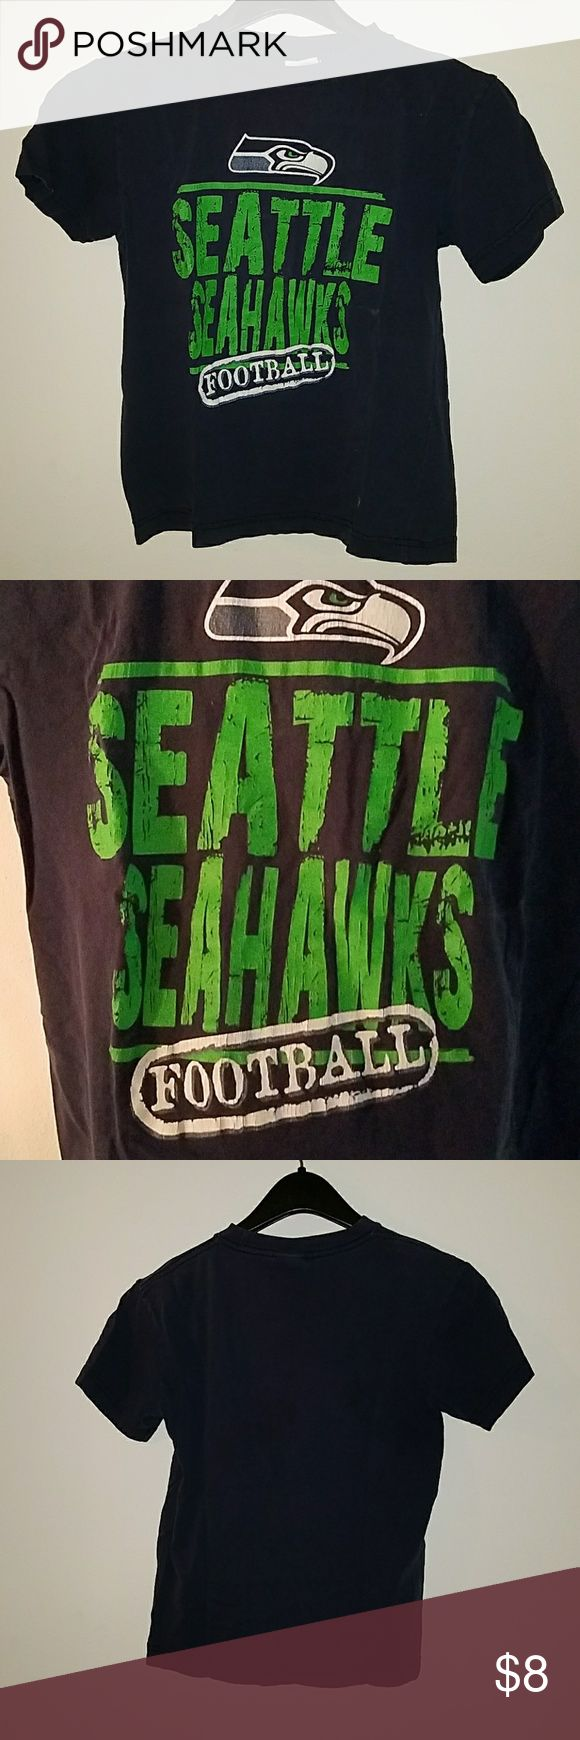 Seahawks Size M (8) Kids T-shirt Seahawks Size M (8) Kids T-shirt.  Has been worn but LOTS of life in this t-shirt.  GO HAWKS! NFL Shirts & Tops